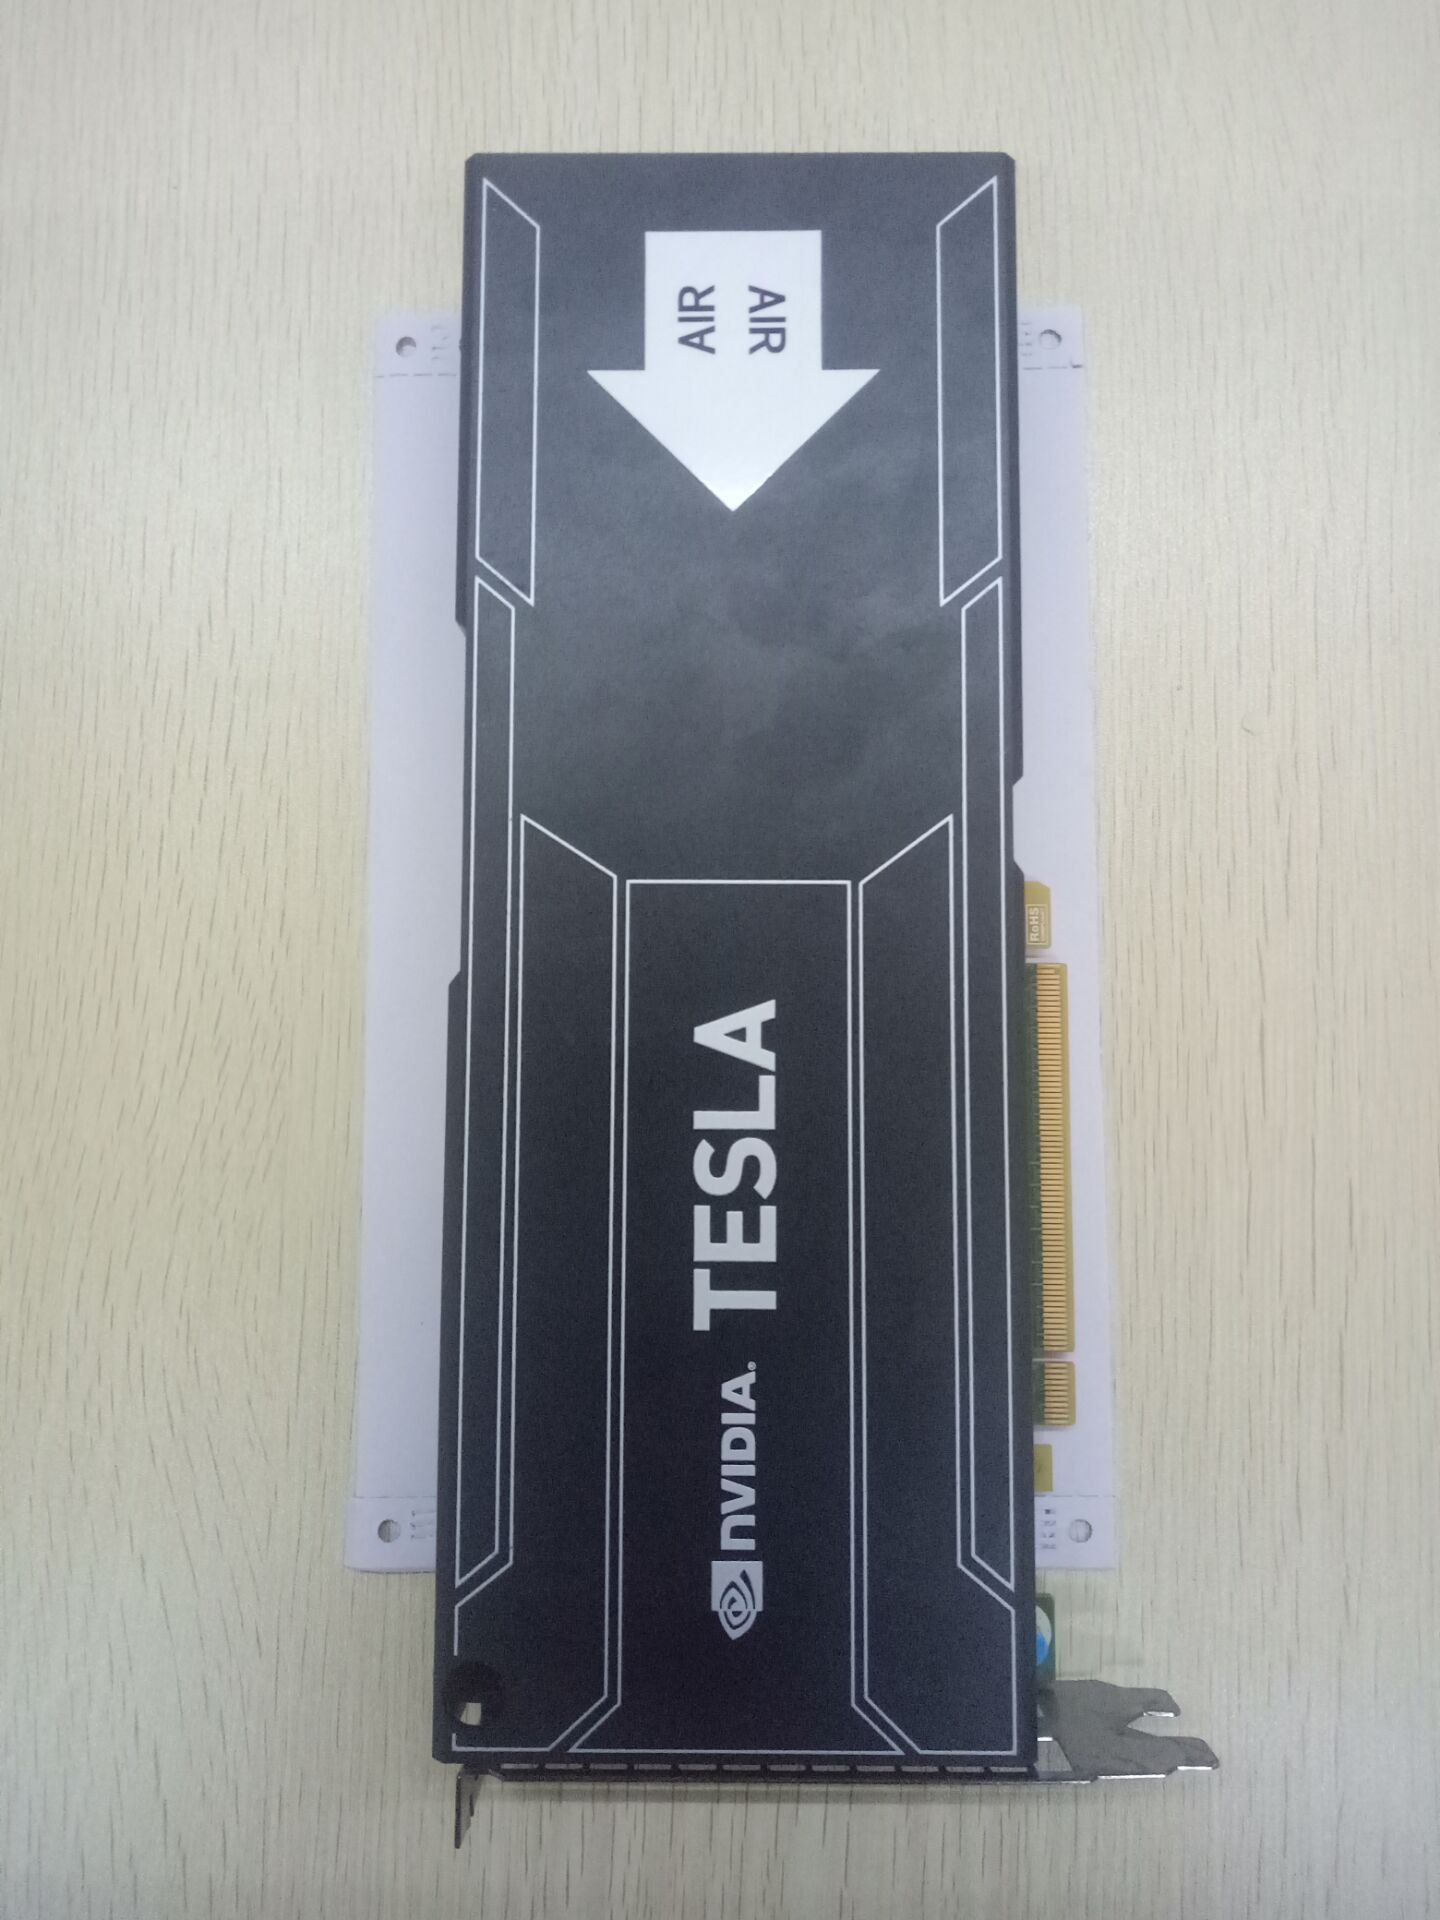 Tesla K10 2YP0C H4NMH Accelerator Card Warranty 3 Years Factory Packaging